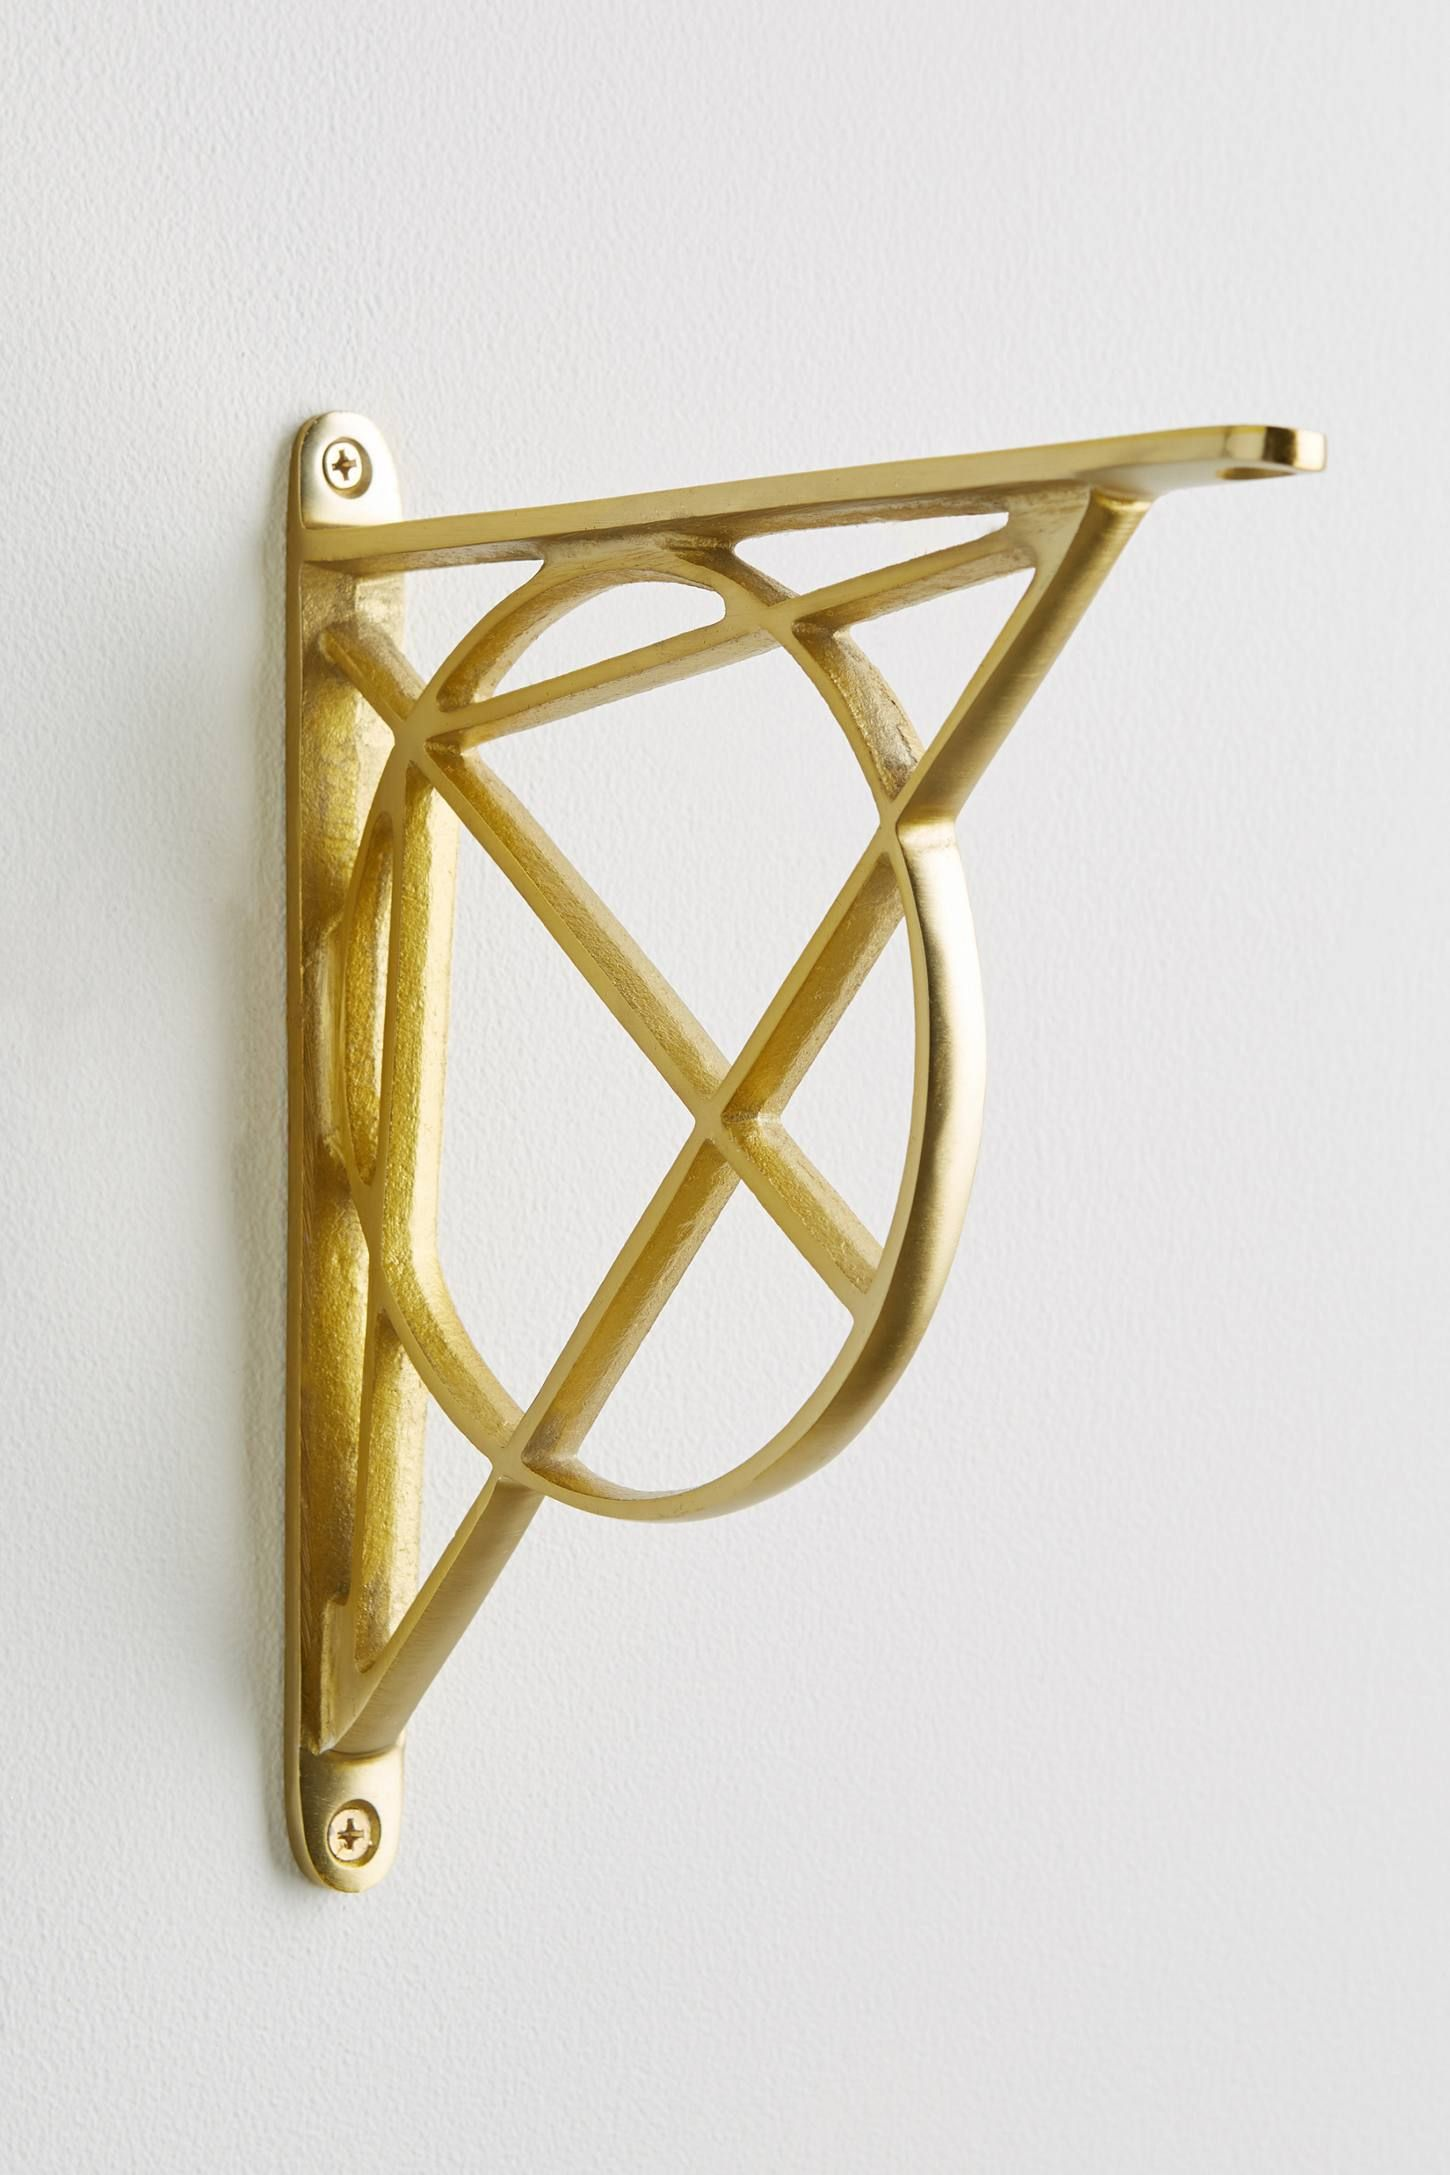 Shop The Geometry Bracket And More Anthropologie At Anthropologie